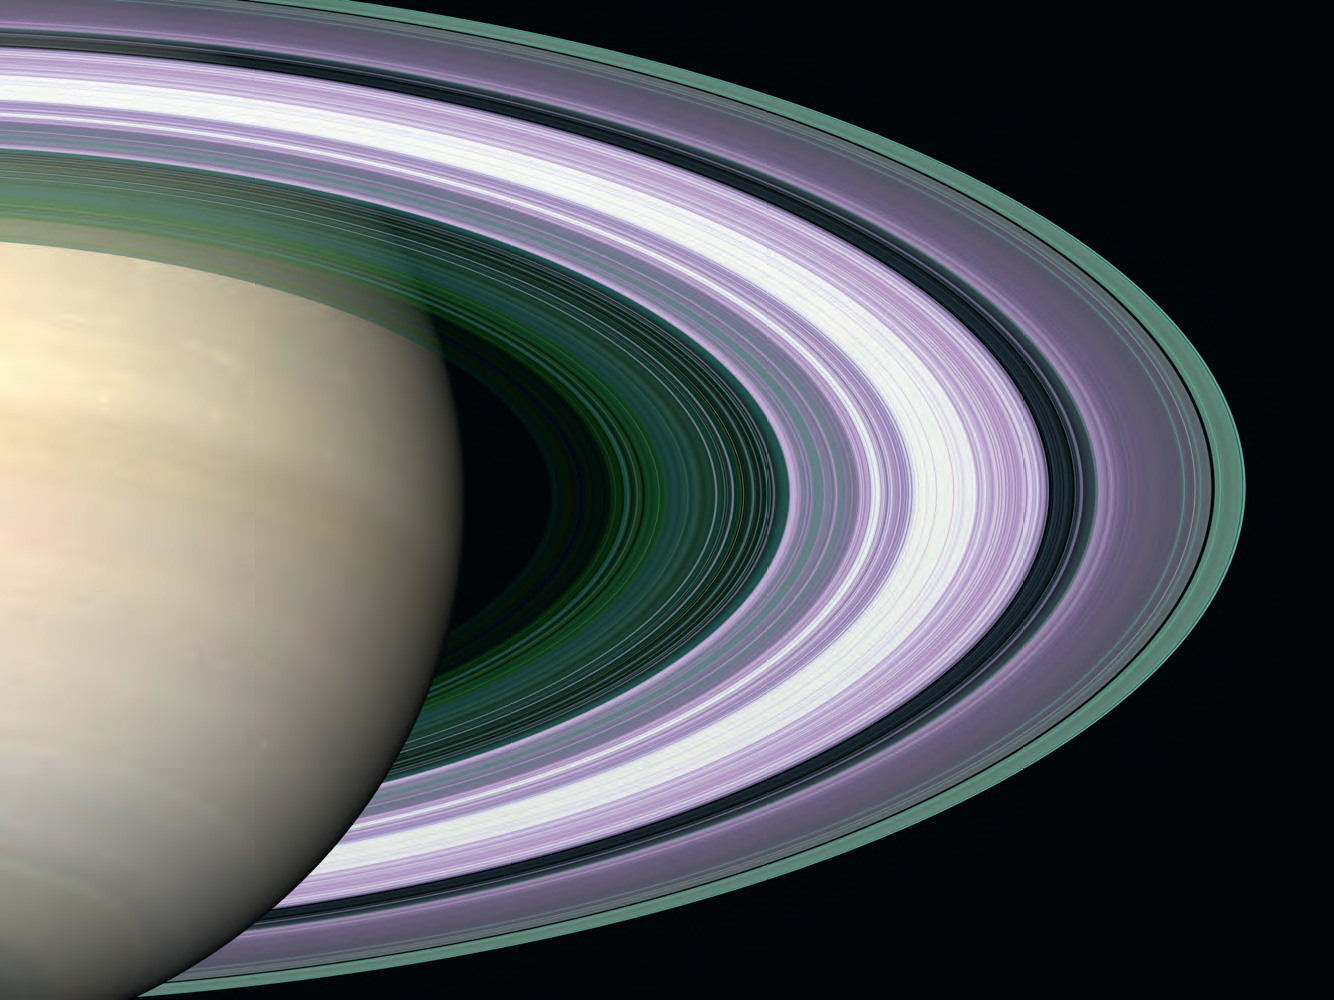 Radio Occultation: Unravelling Saturn's rings 2005, image courtesy of Nasa, JPL